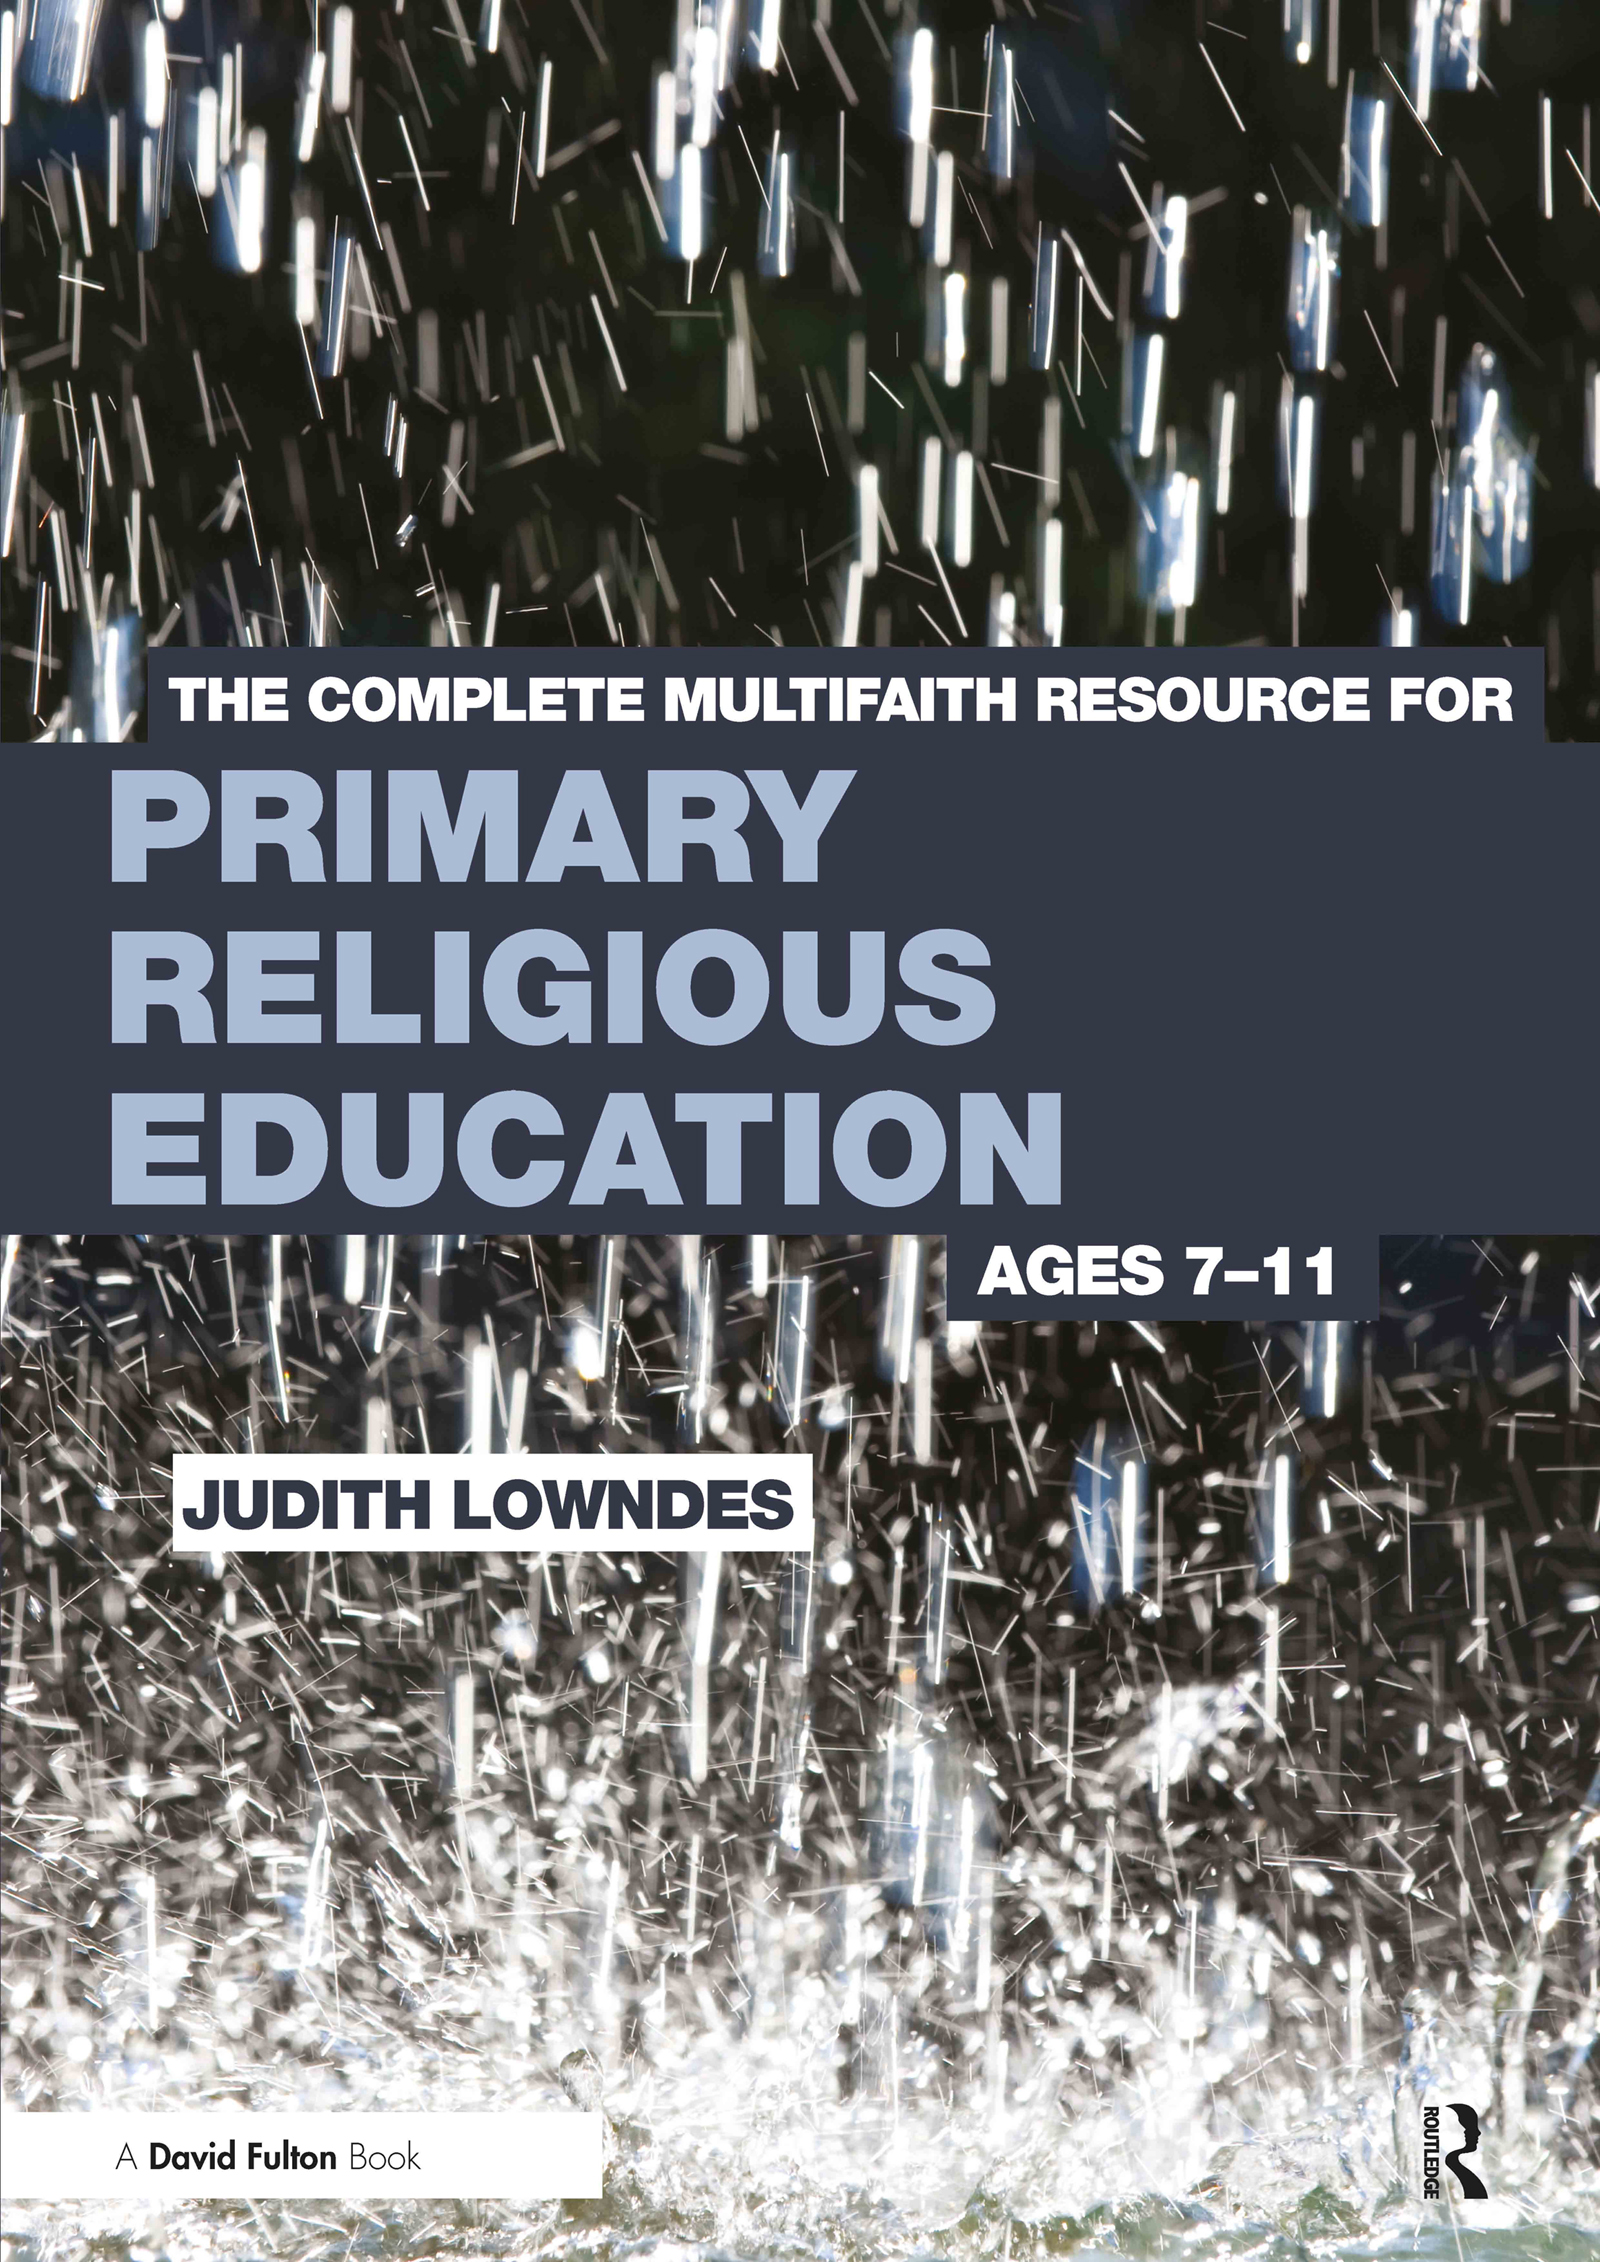 The Complete Multifaith Resource for Primary Religious Education: Ages 7-11 book cover